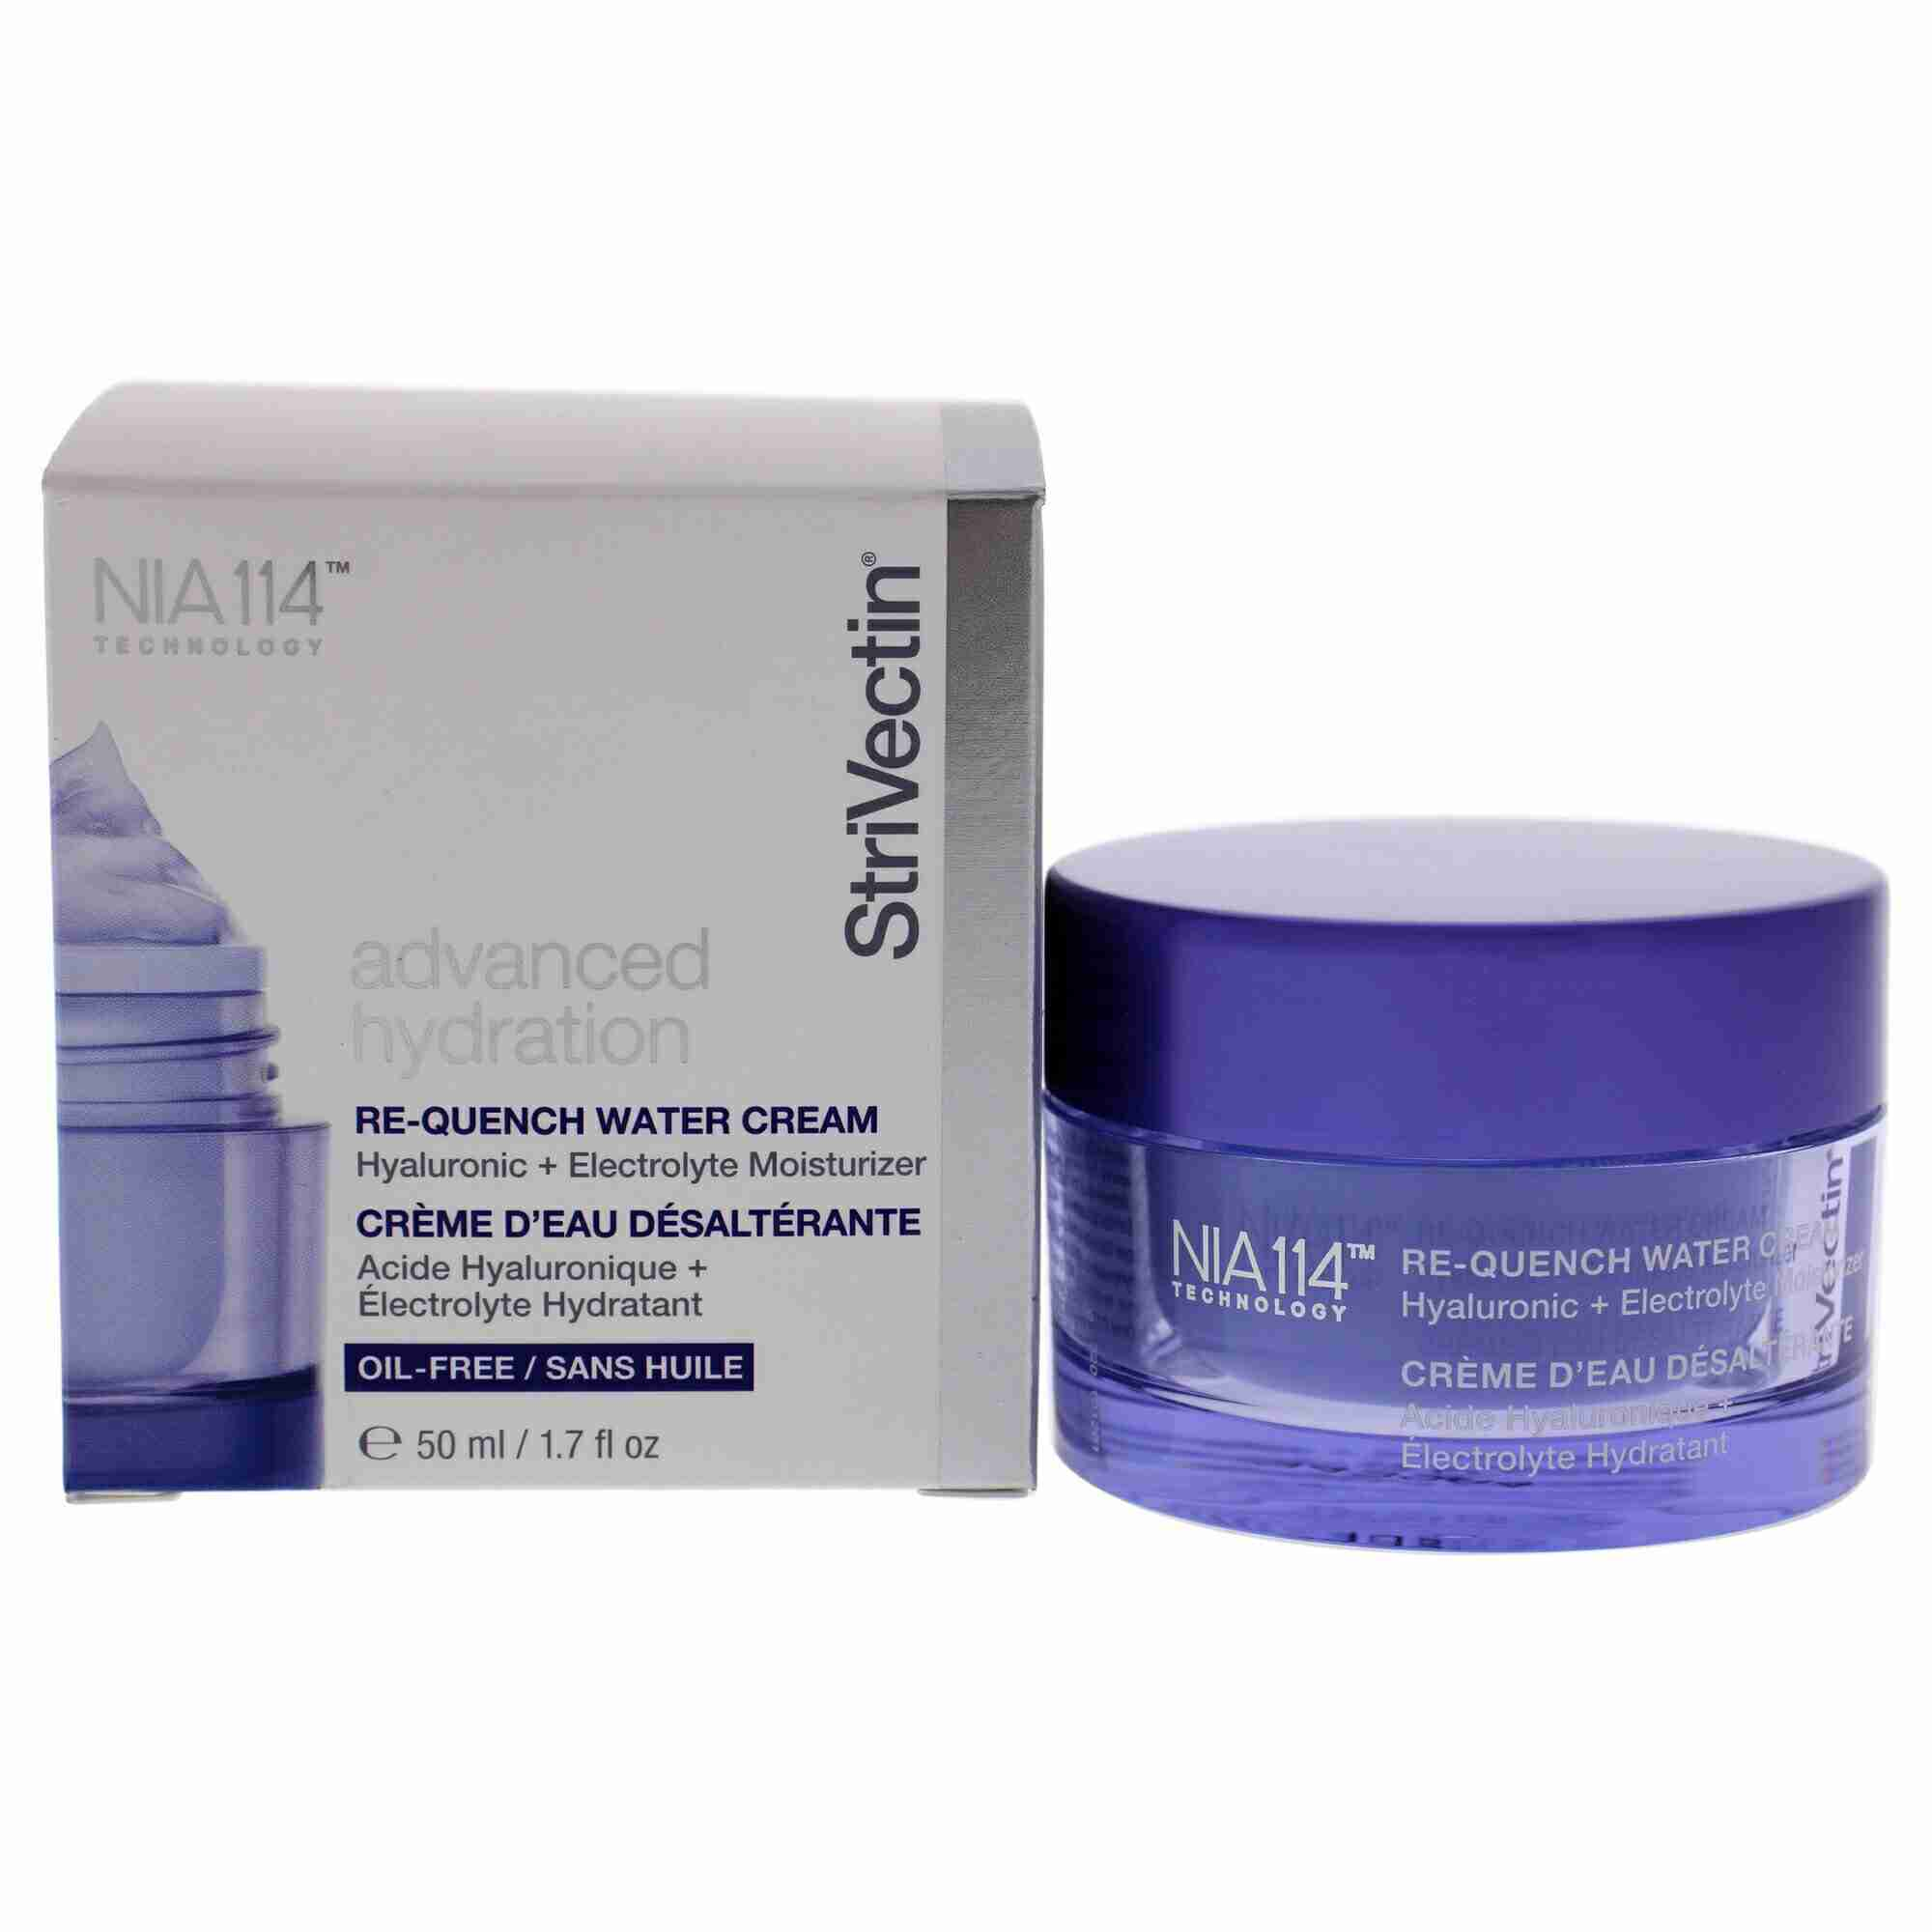 Strivectin Advanced Hydration Re-Quench Water Cream - Hyaluronic + Electrolyte Moisturizer (Oil-Free) 50ml/1.7oz